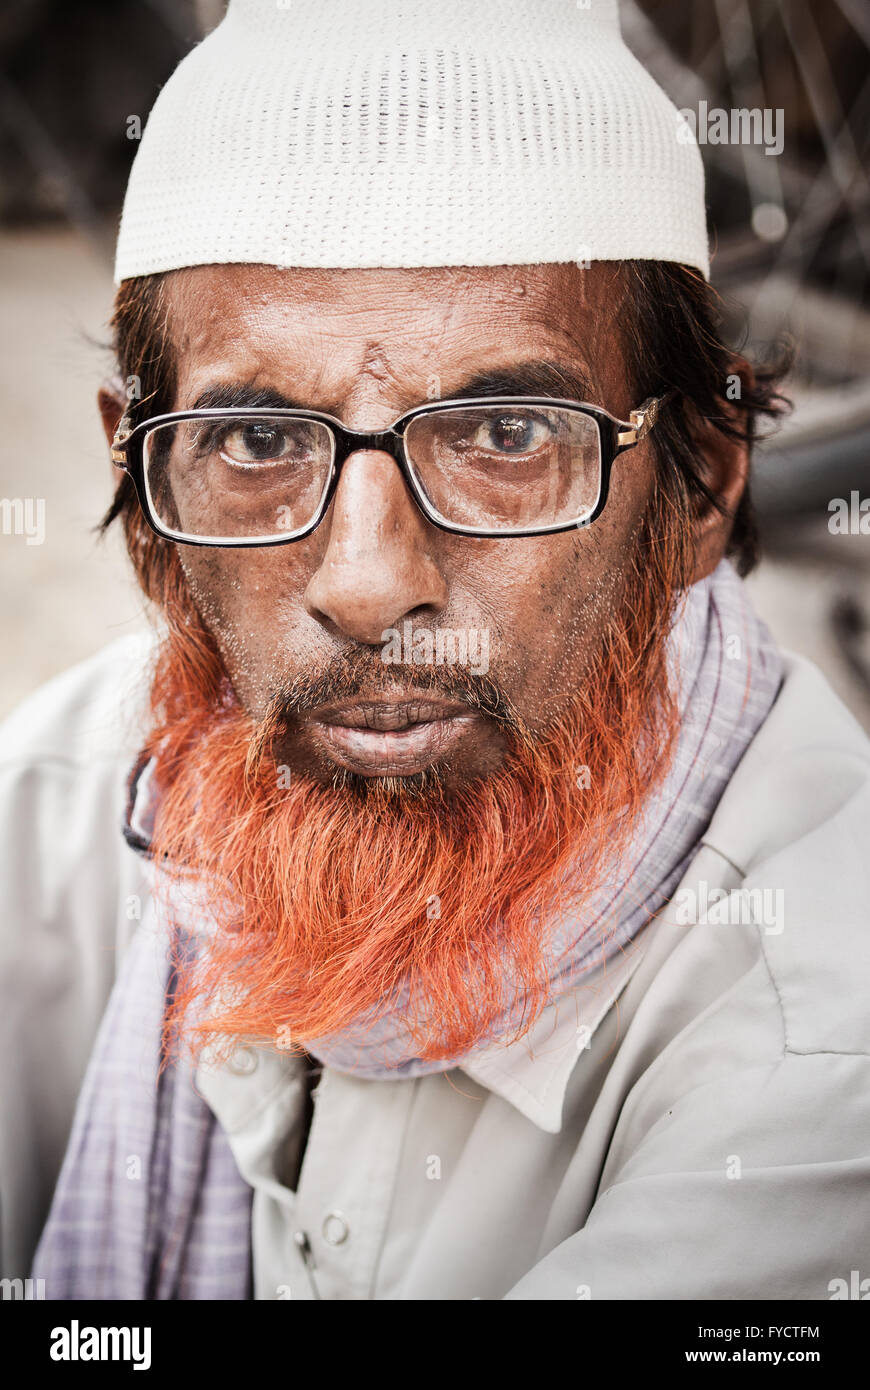 Henna Dyed Beard Displayed In A Portrait Photograph Of An Indian